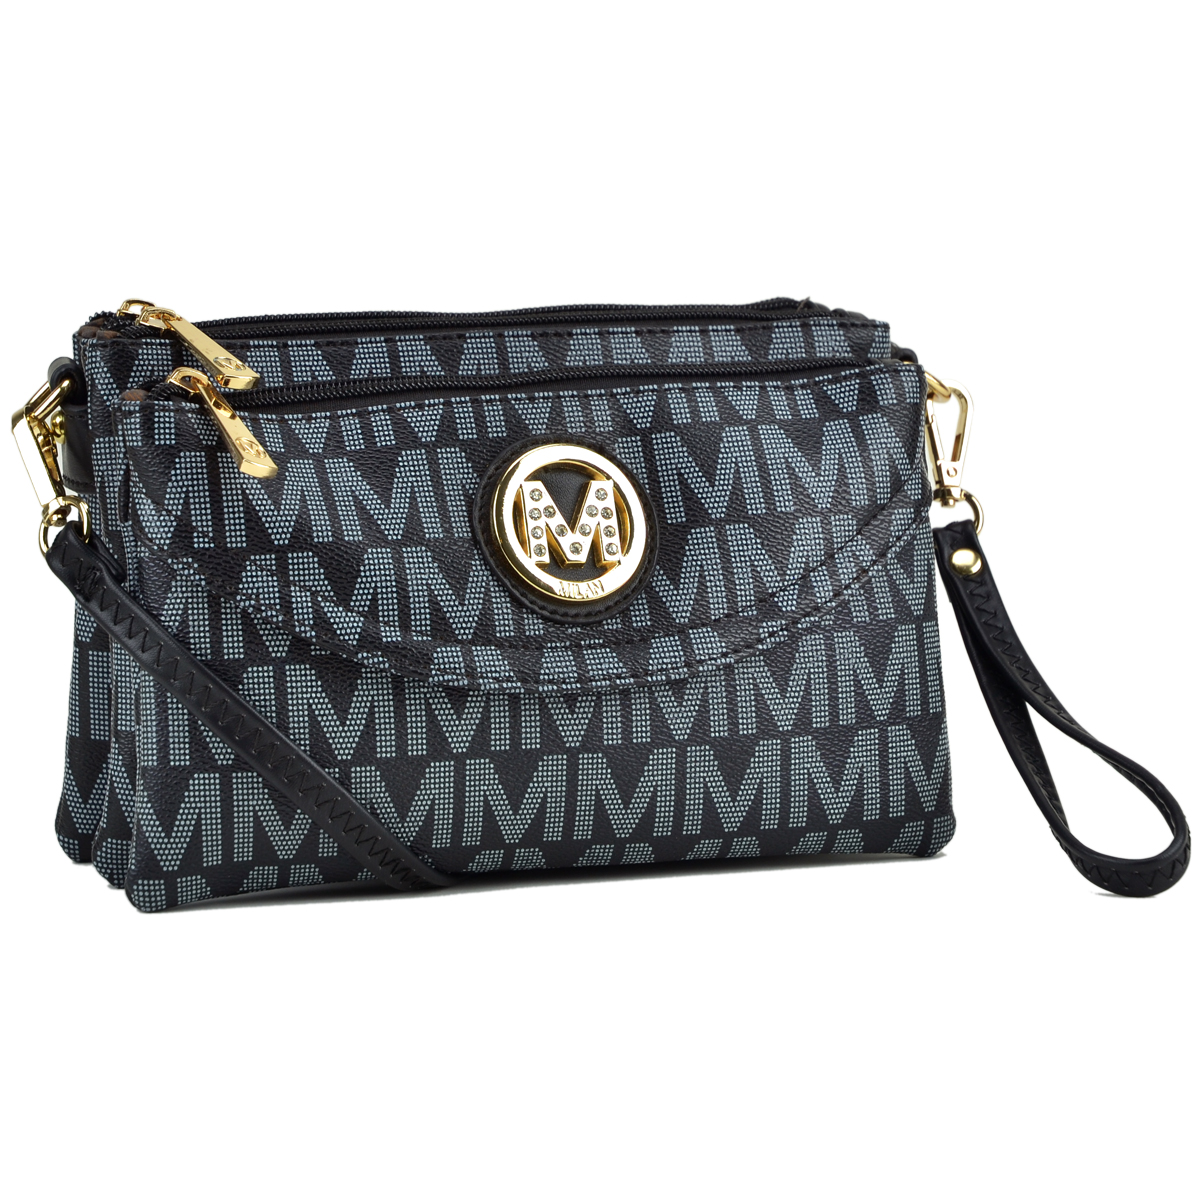 Monogram Logo Soft Faux Leather-Multi compartment- Messenger/Crossbody/ Clutch Bag